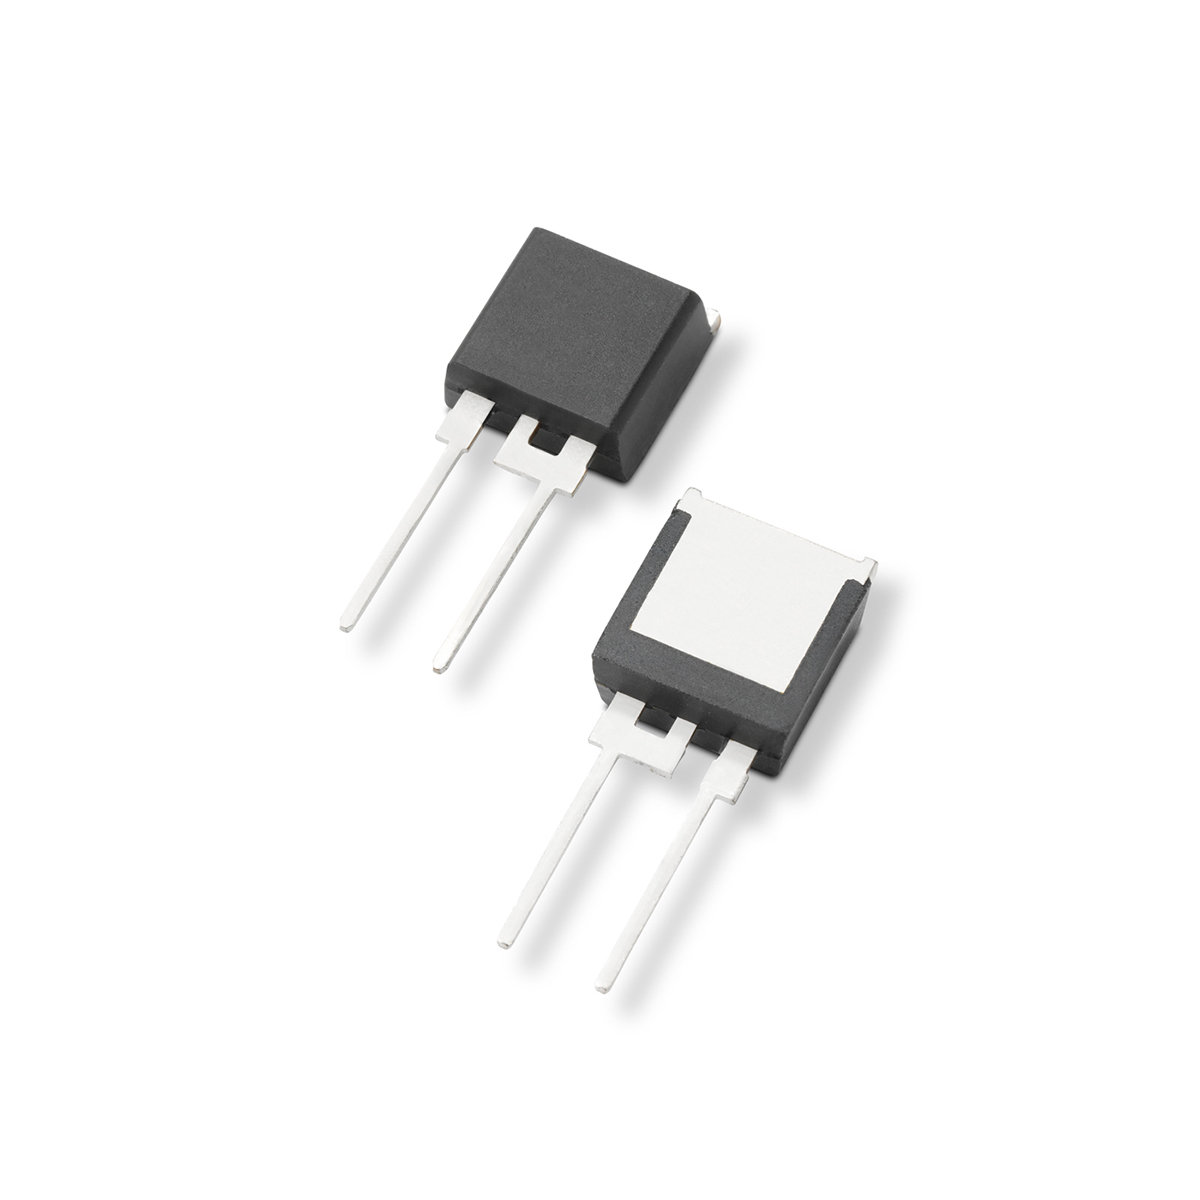 Littelfuse Sidactor Protection Thyristors Provide Enhanced Surge Electronic Circuits Capacitive Discharge Ignition Circuit Click To Download A High Resolution Images